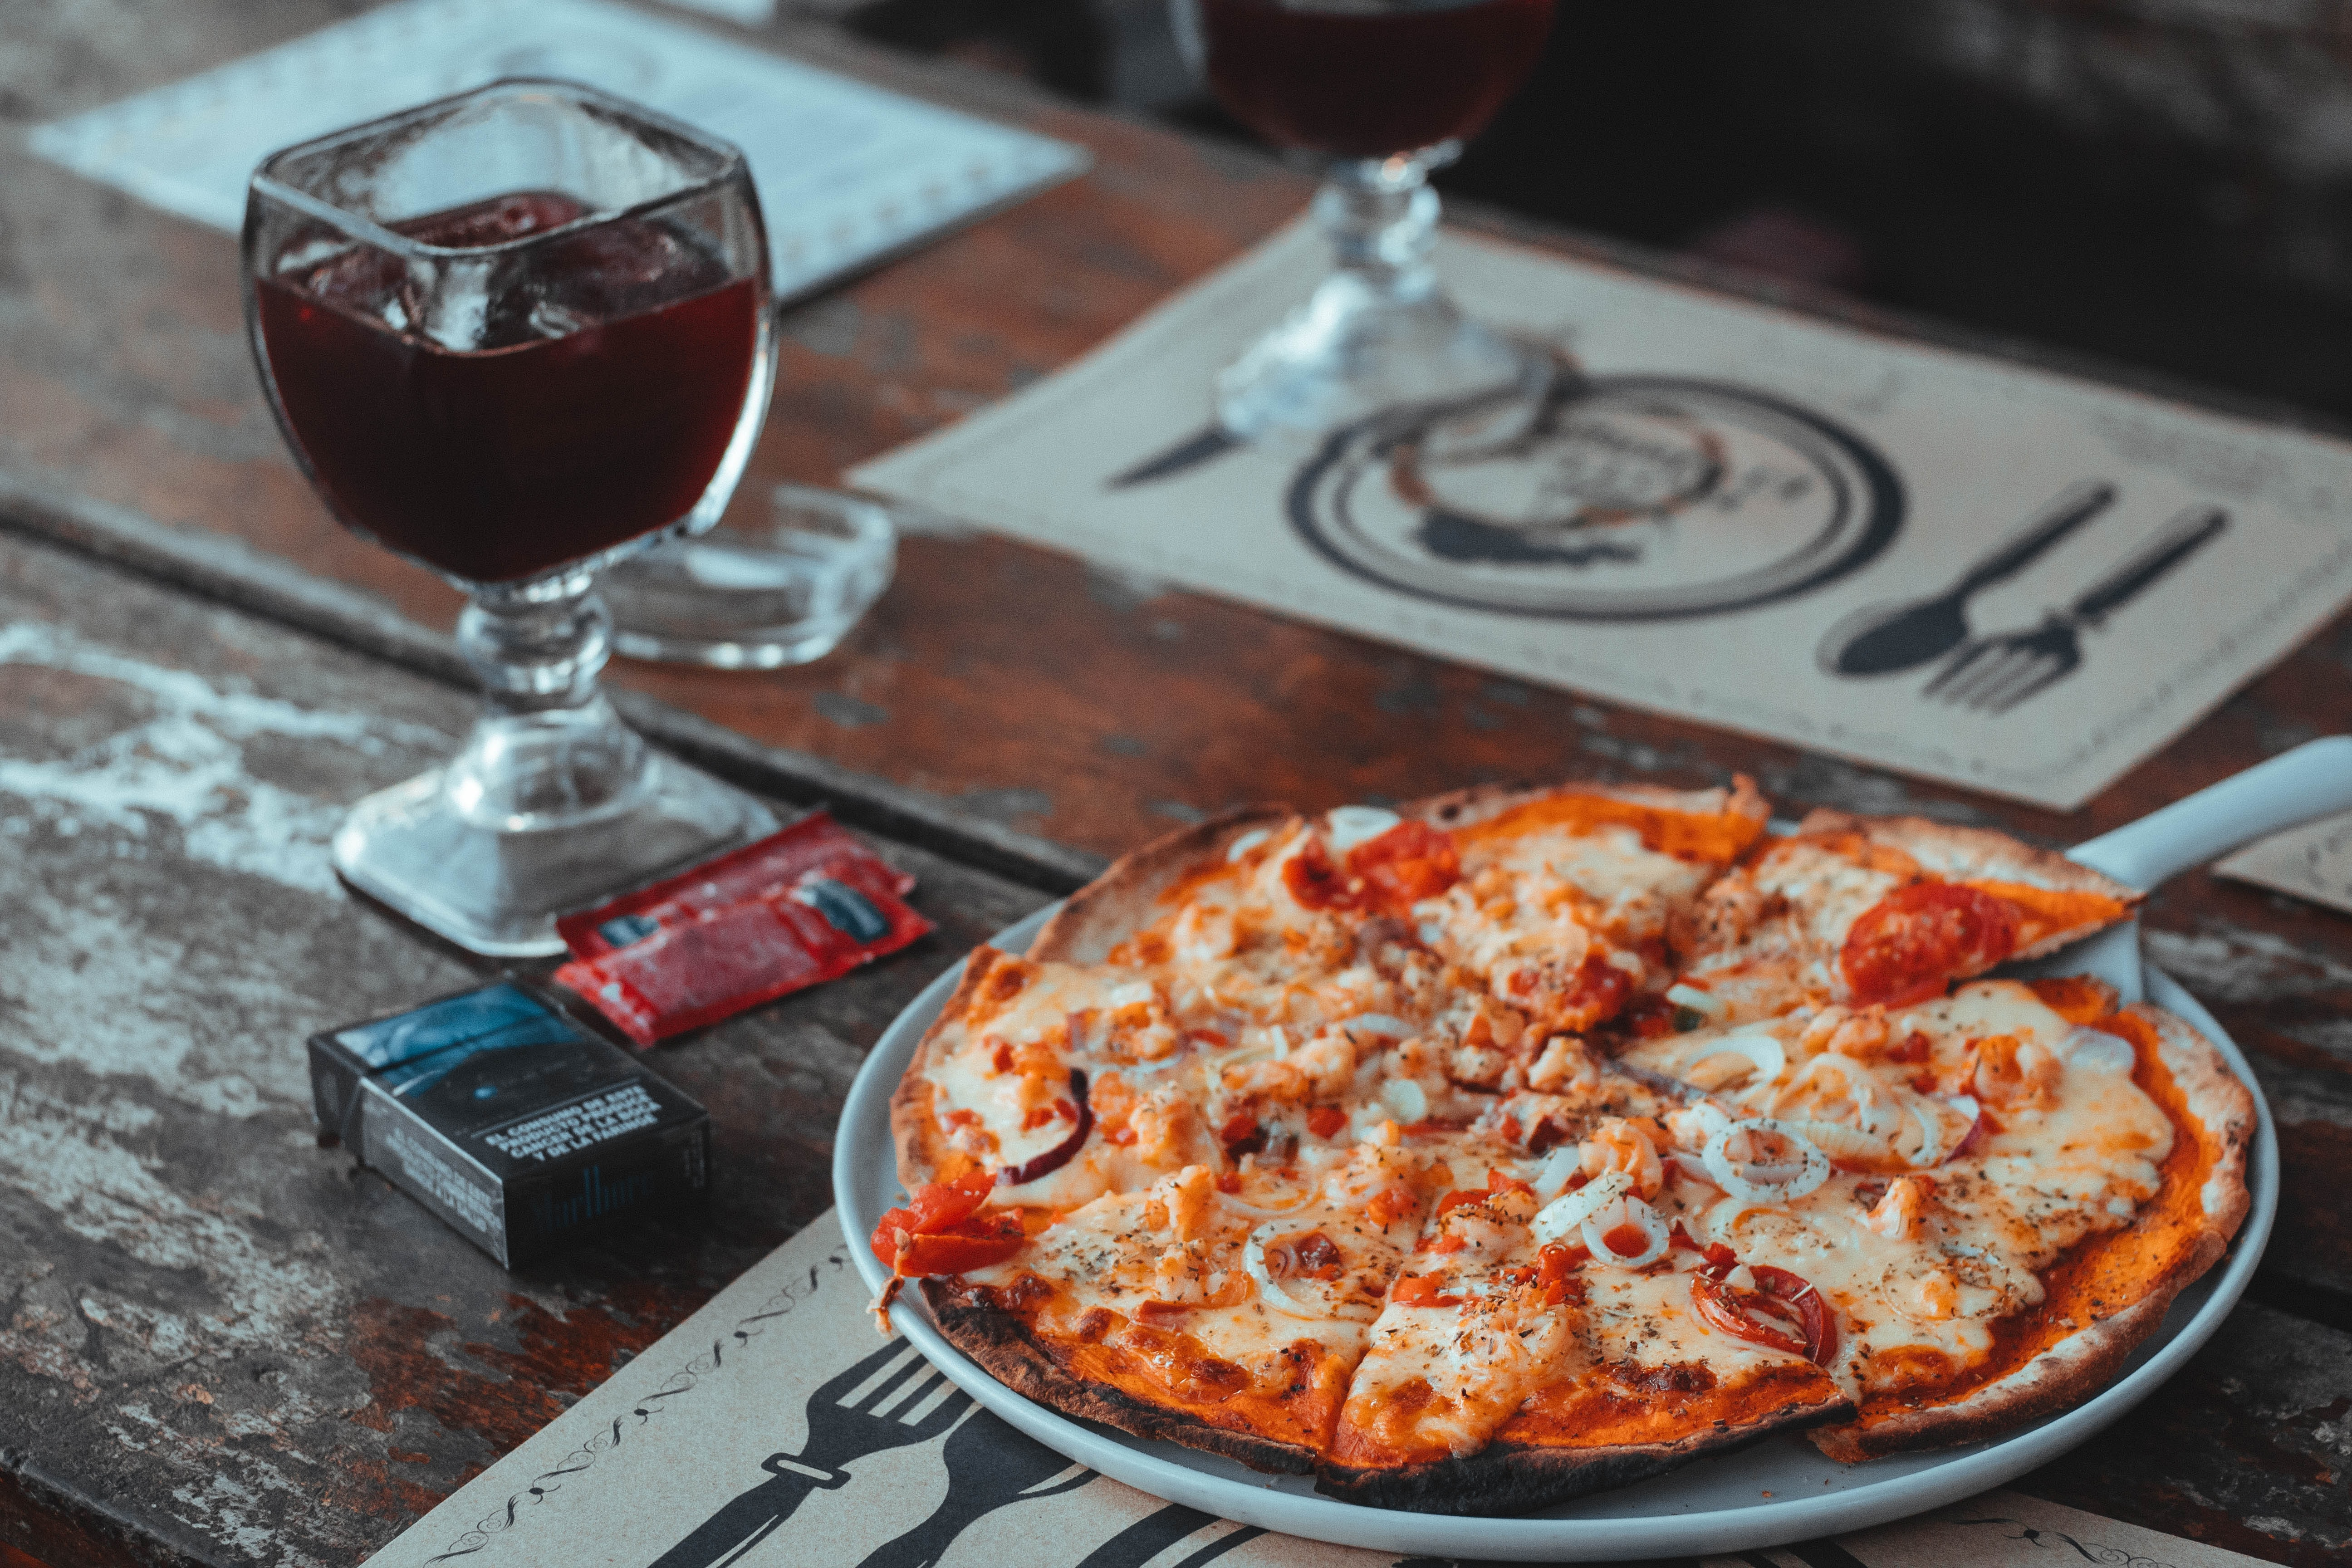 pizza on the plate